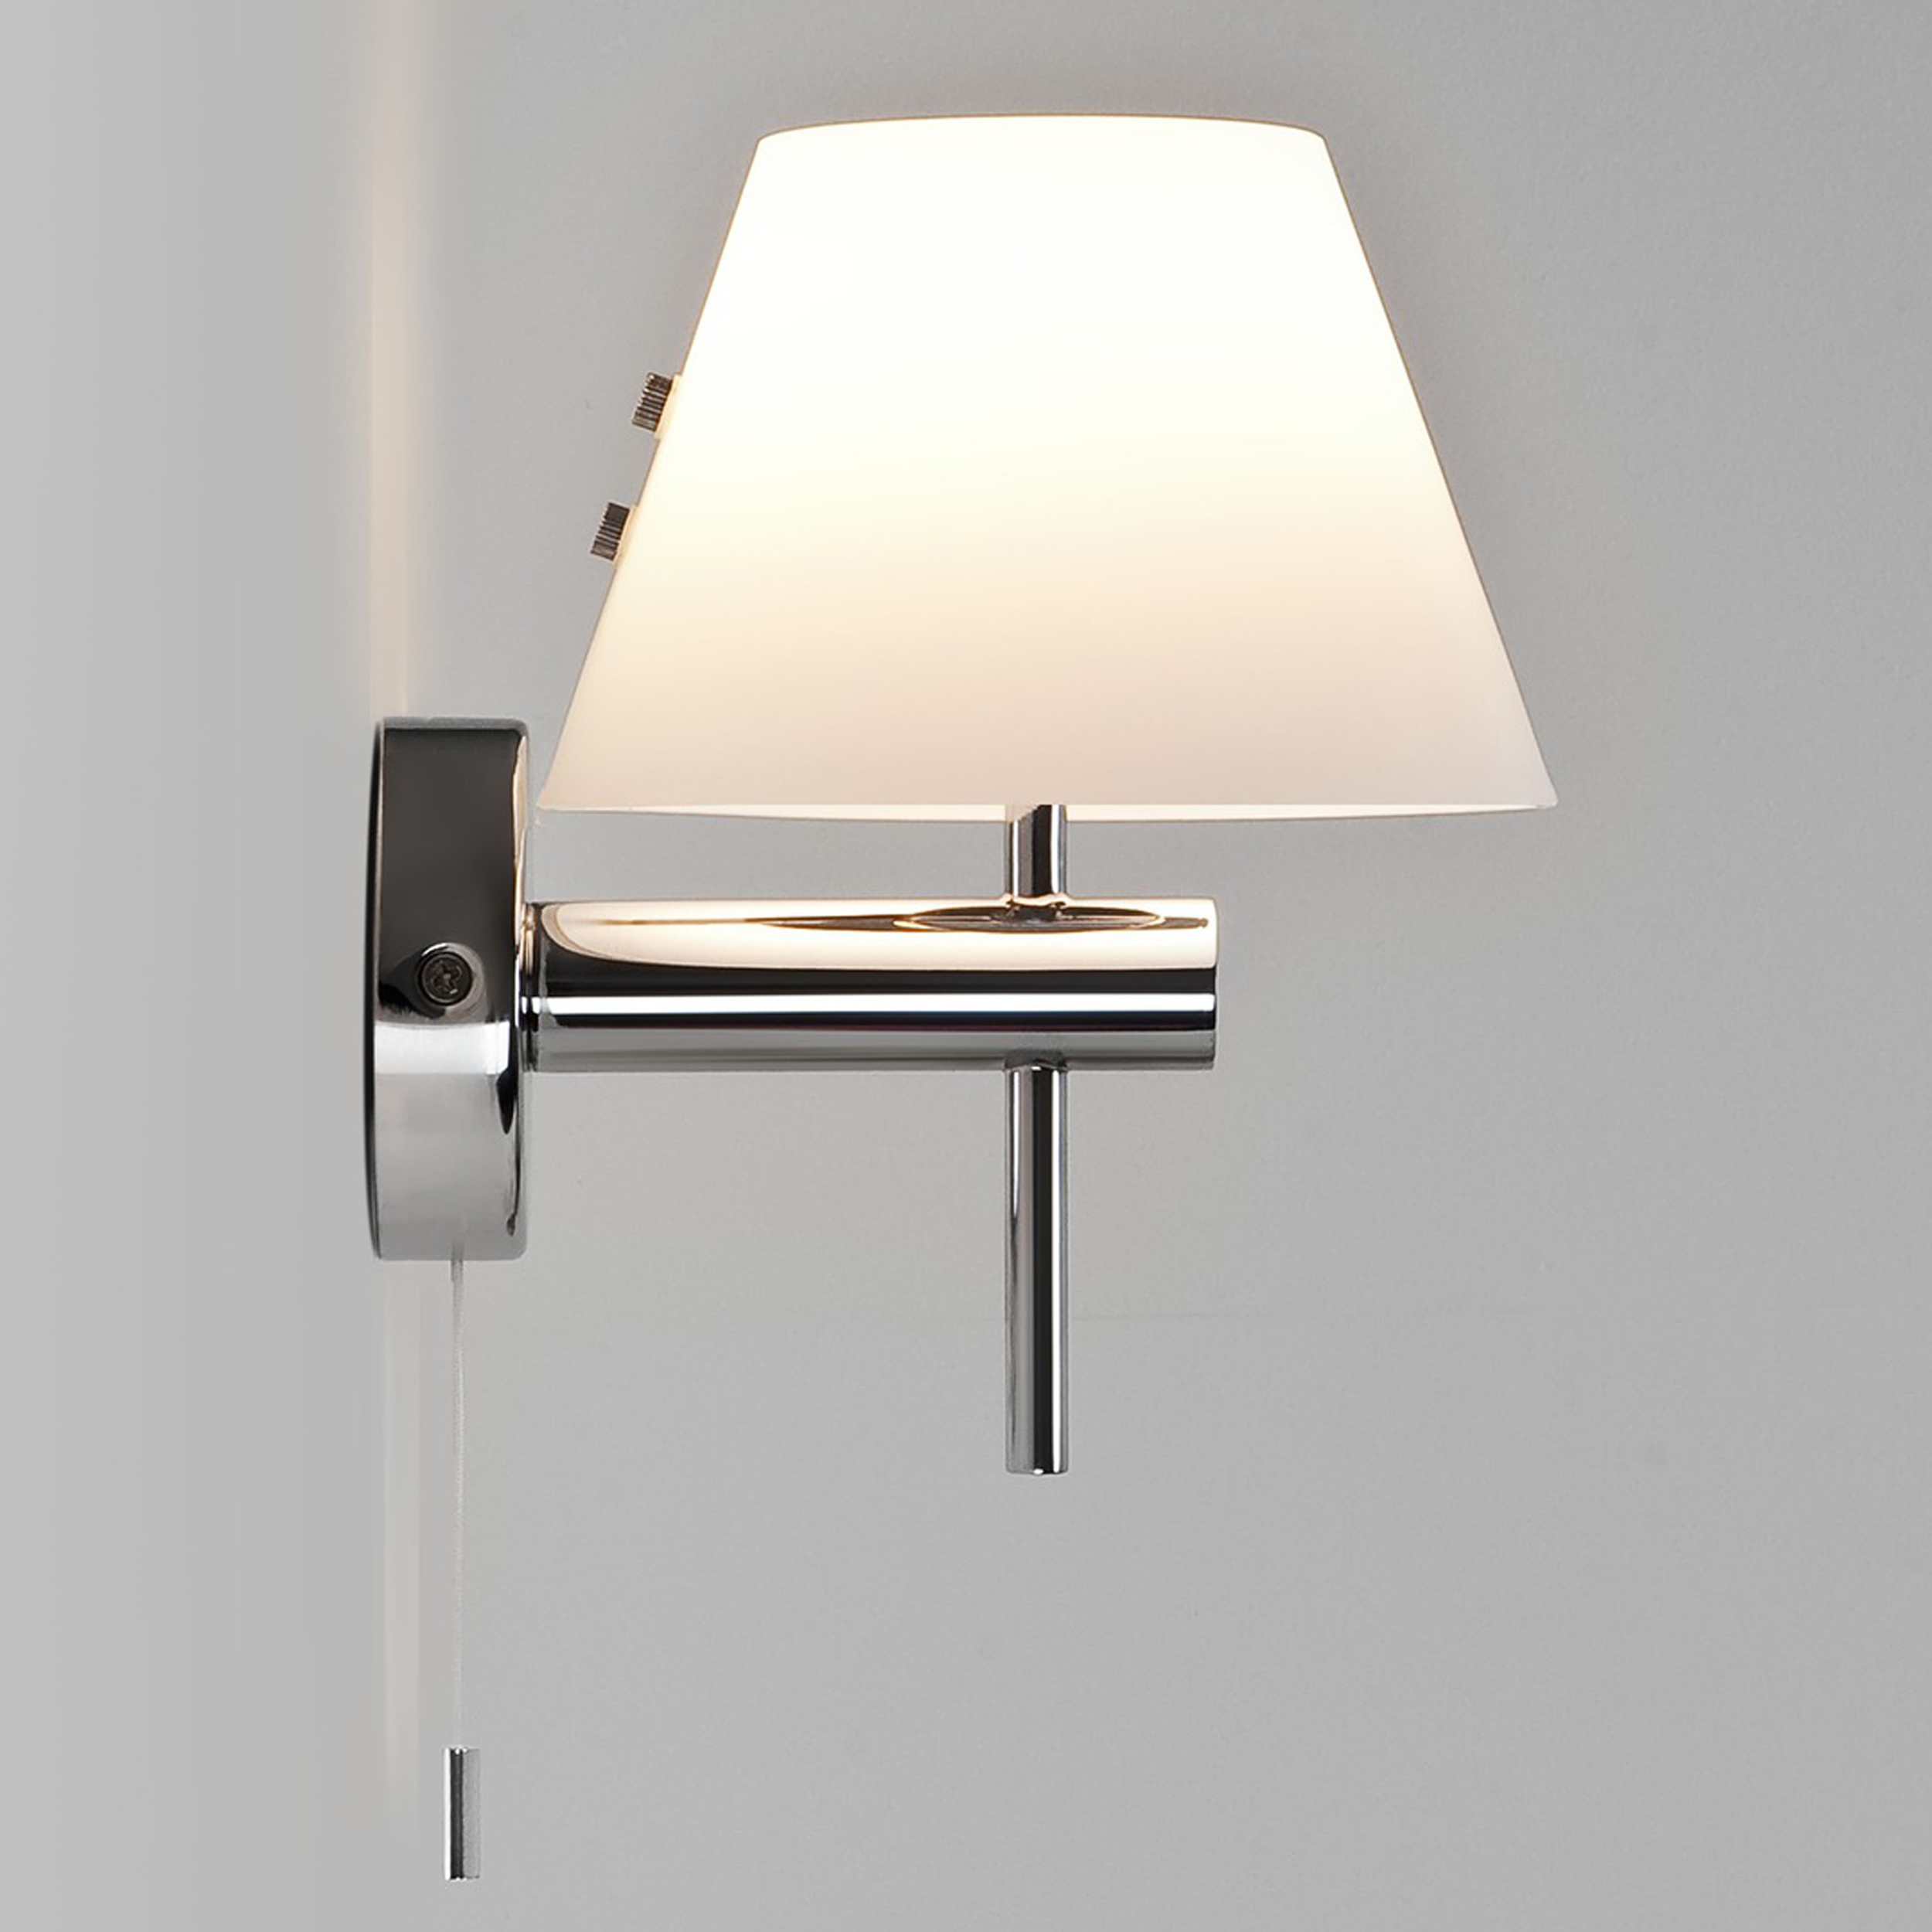 Astro Roma Switched Wall Light Polished Chrome B